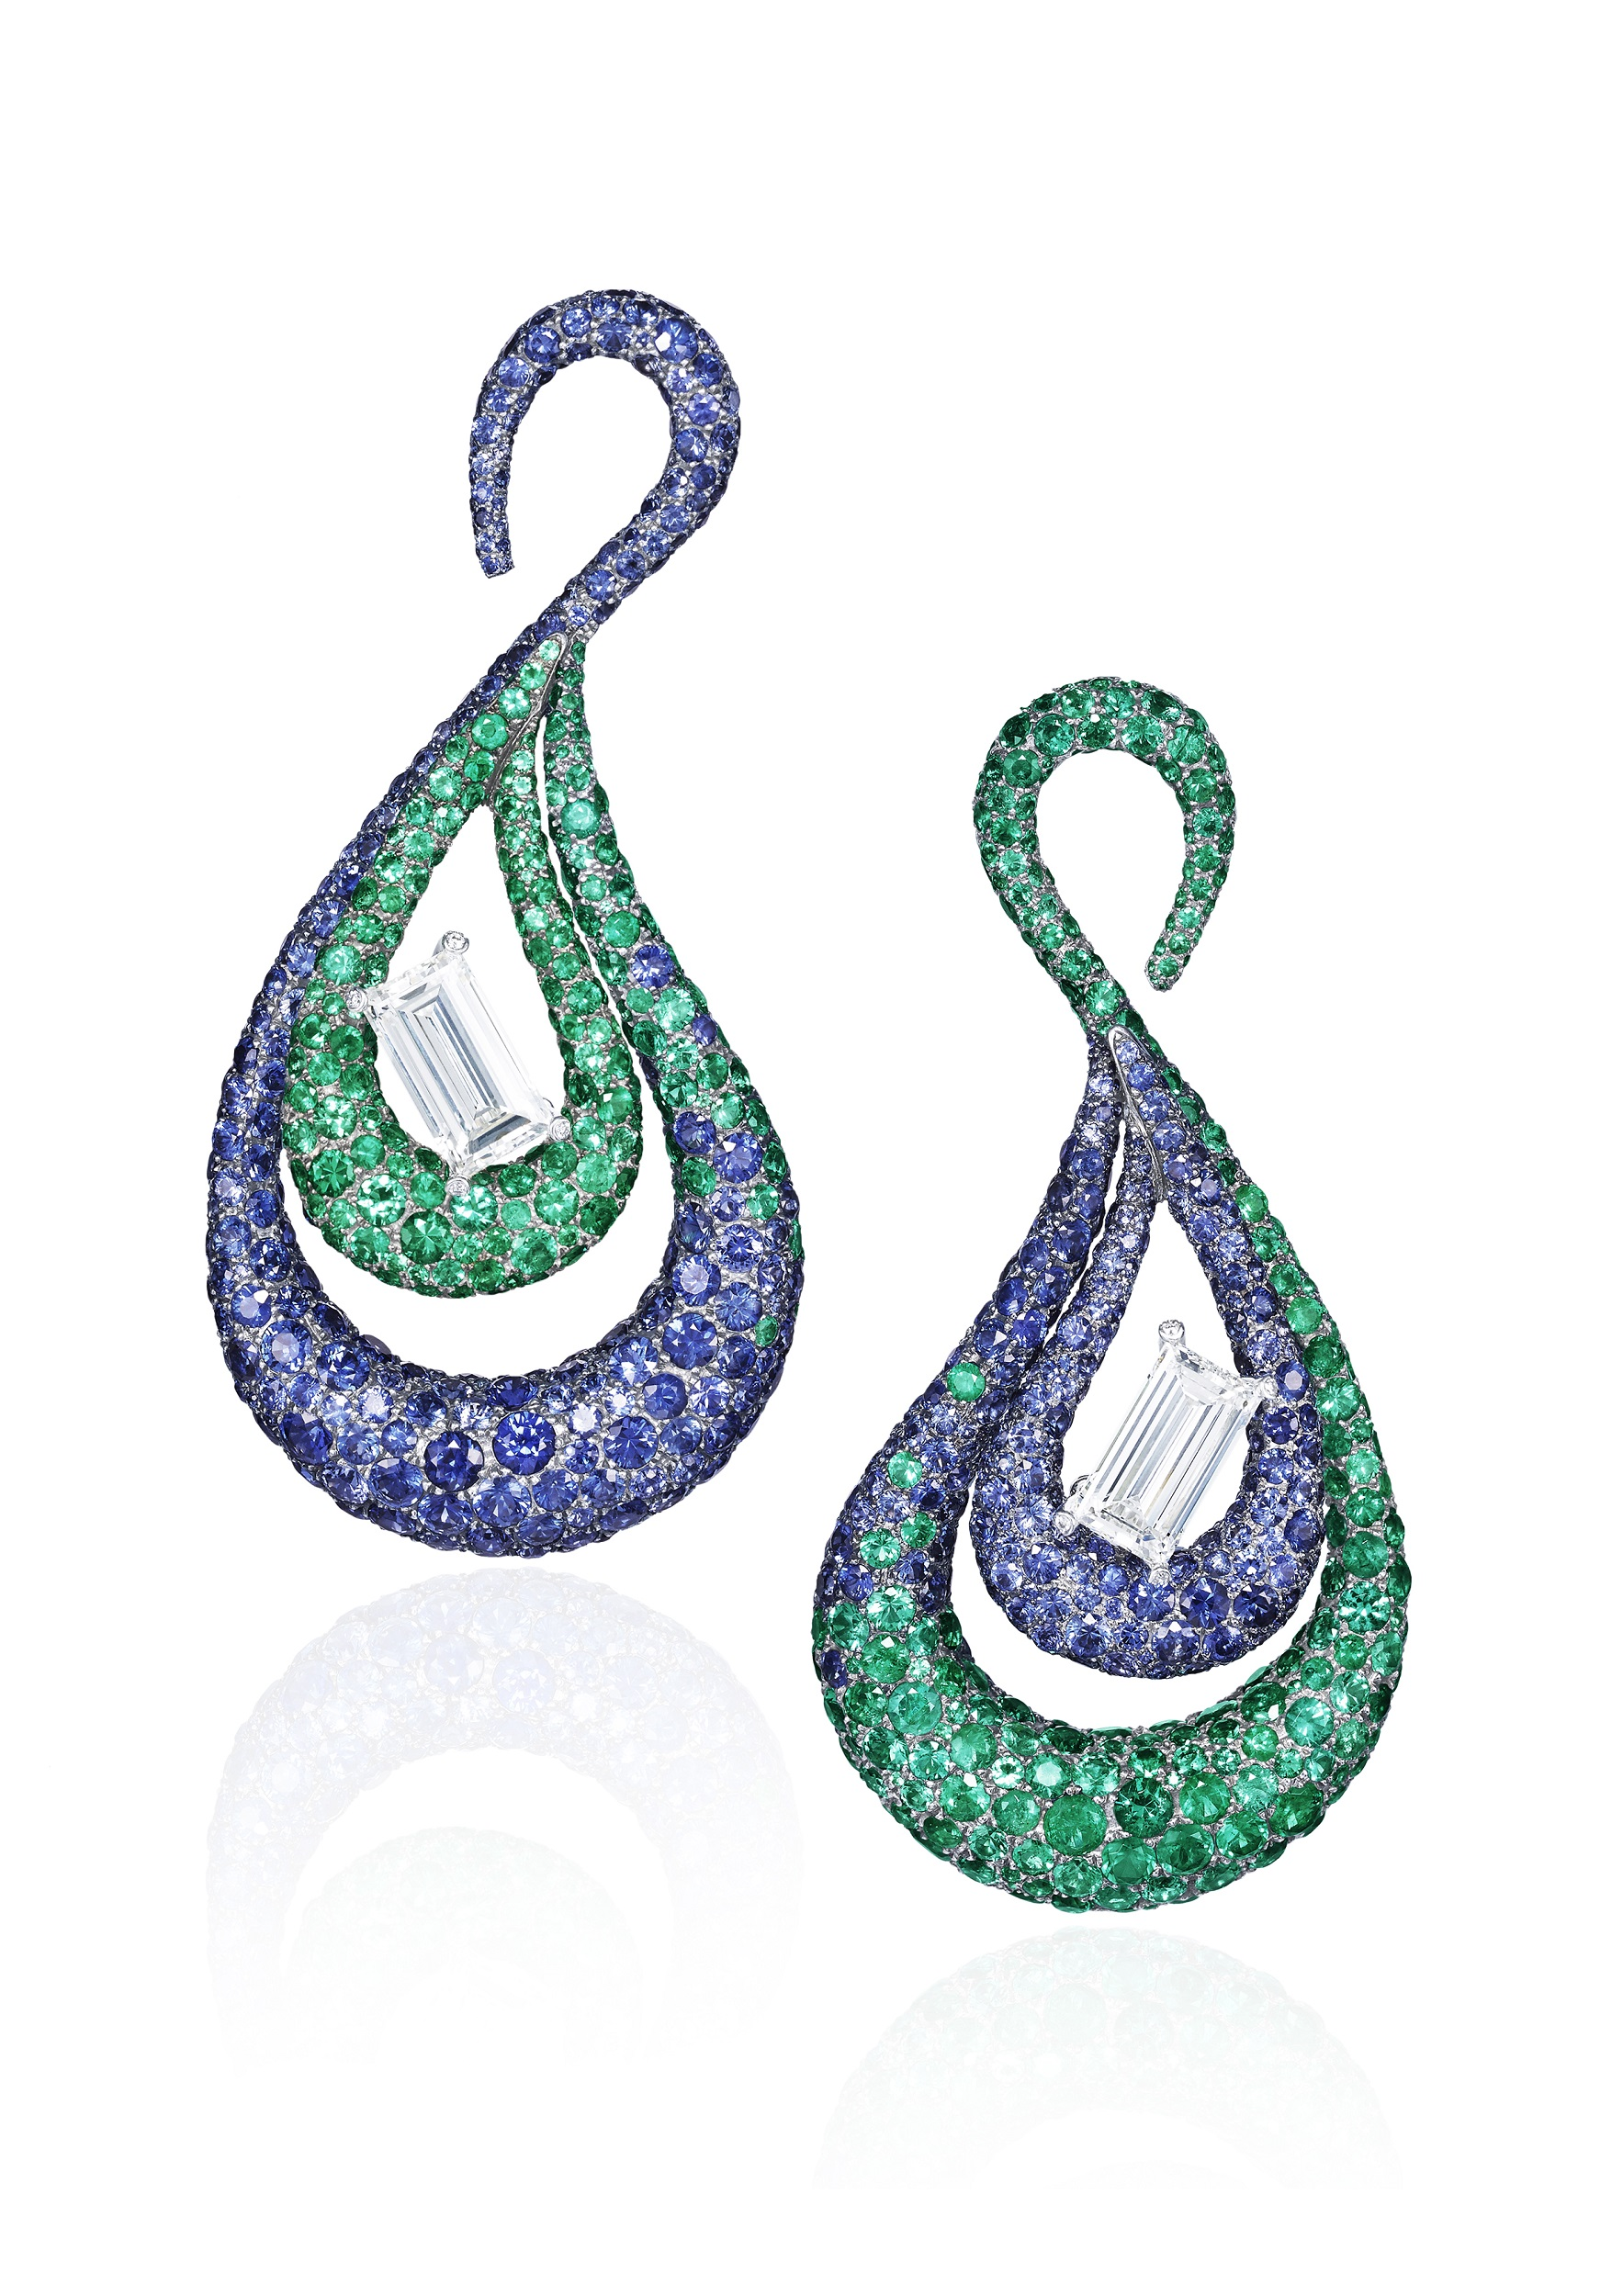 de Grisogono sapphire diamond and emerald earrings